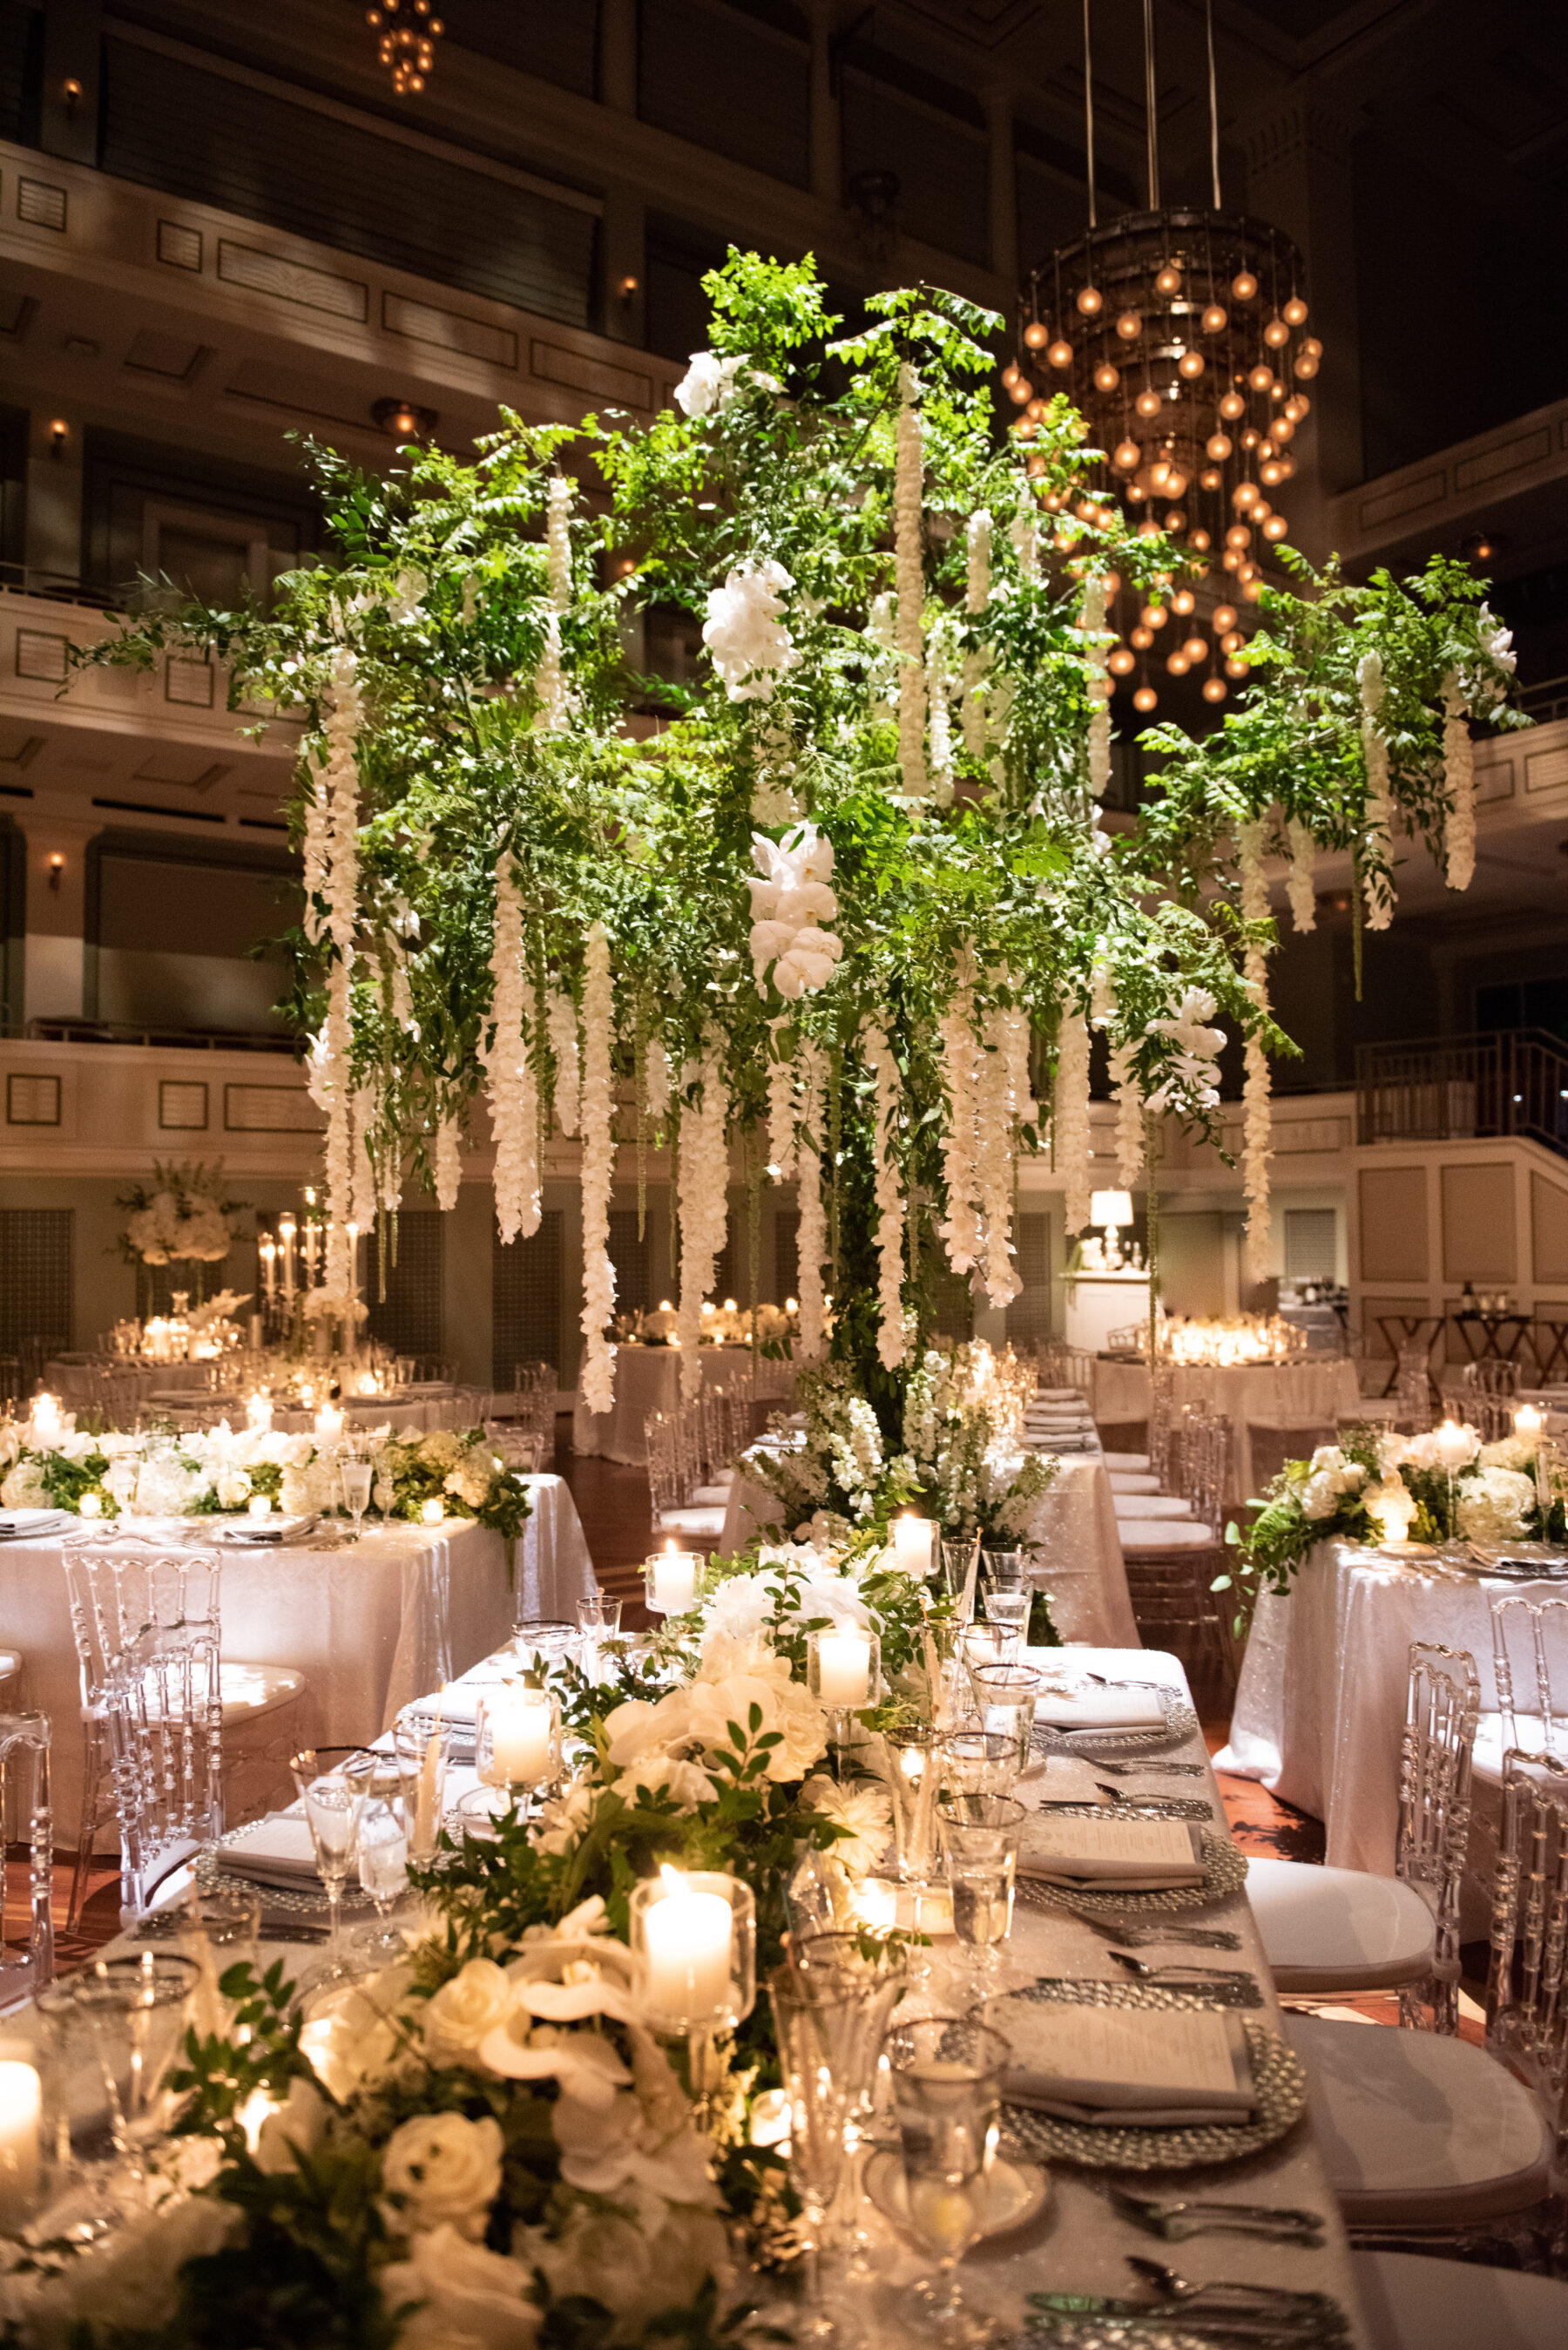 Hanging wedding flowers: Floral Filled Luxurious Wedding by LMA Designs featured on Nashville Bride Guide